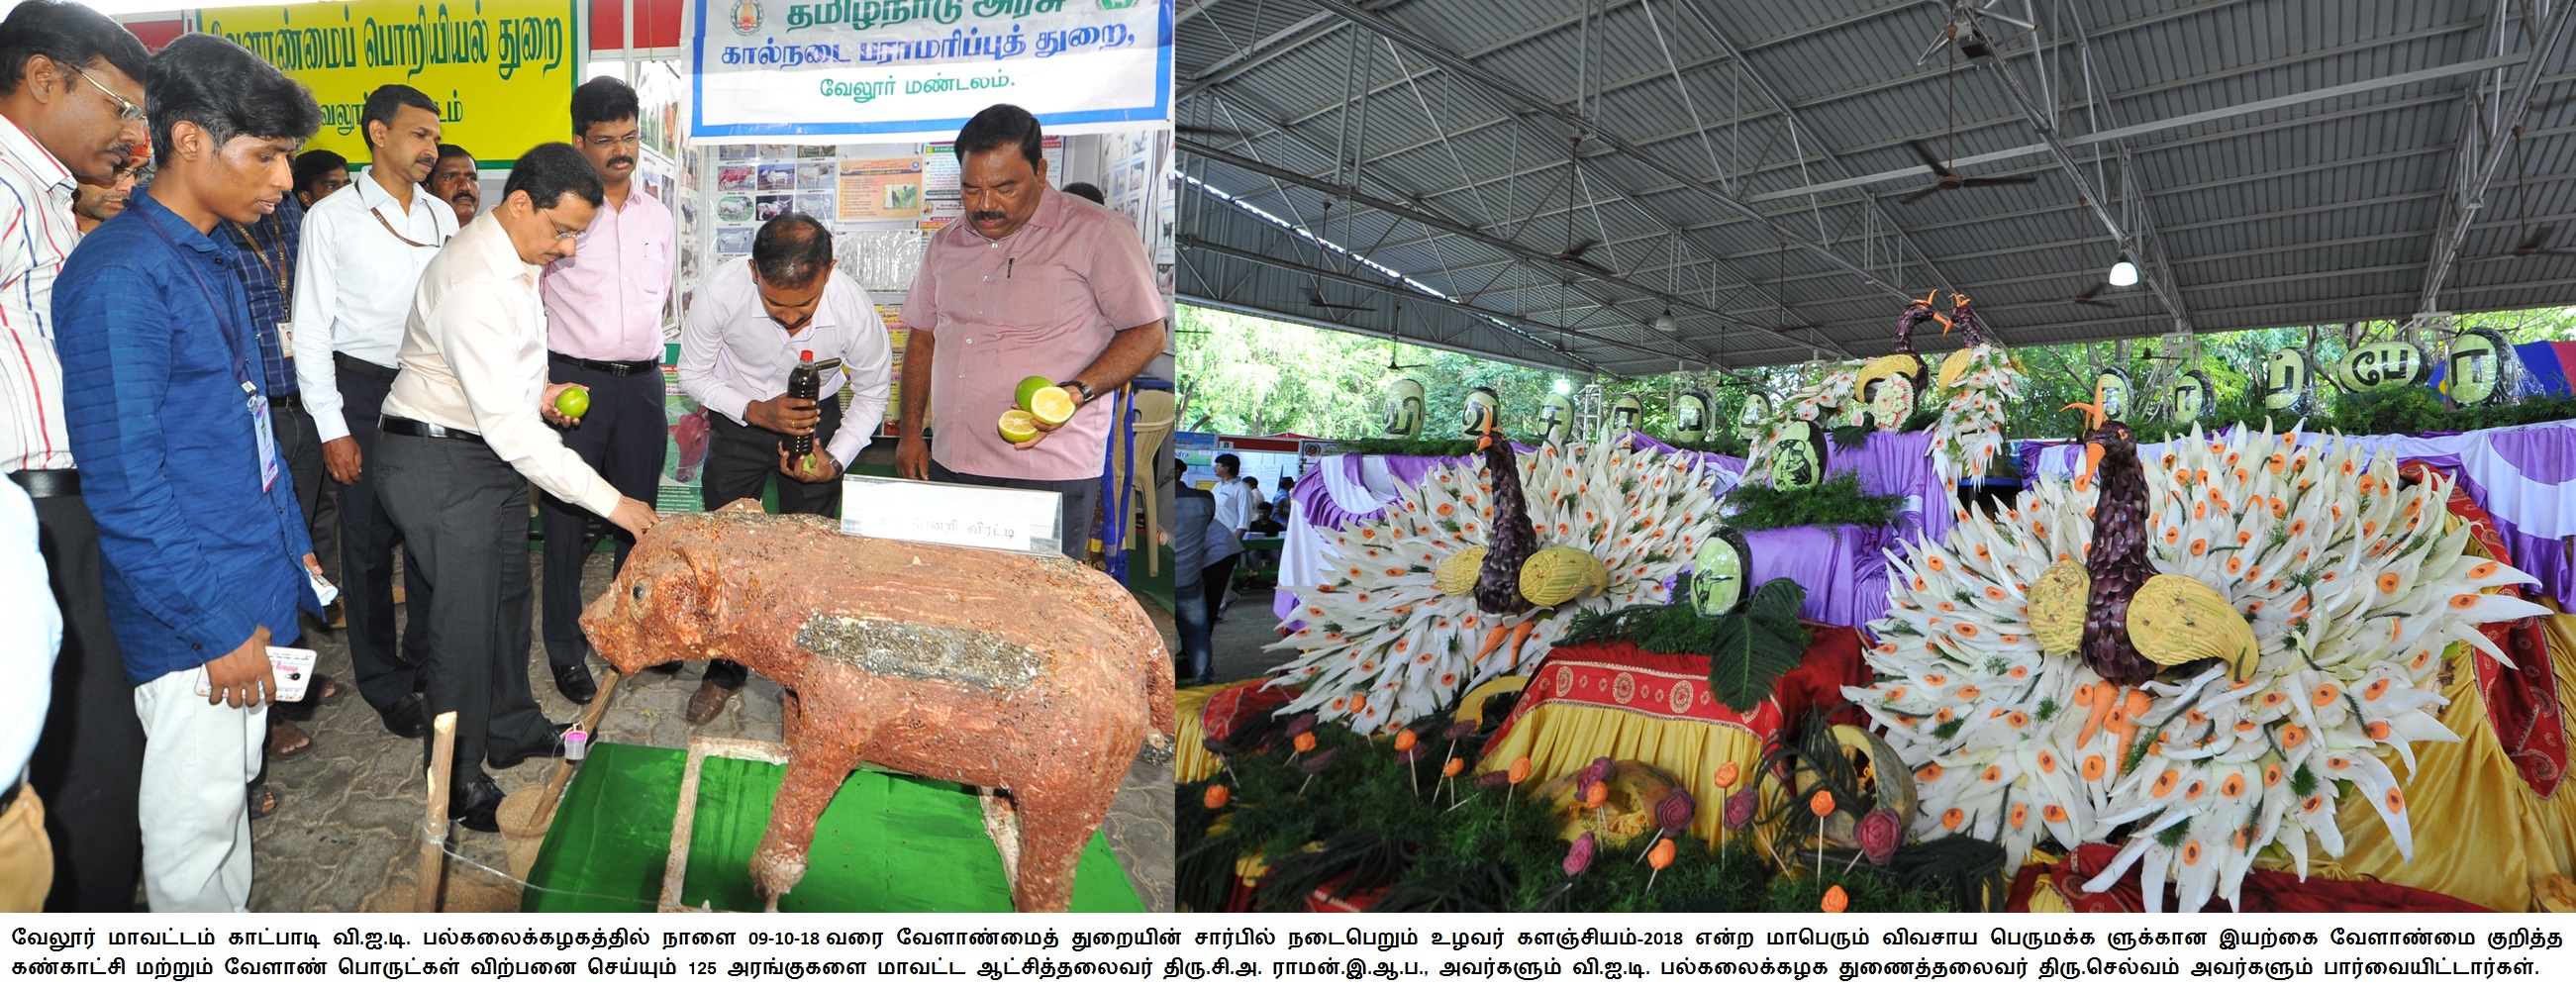 Organic farming exhibition and agricultural products sales 08/10/2018